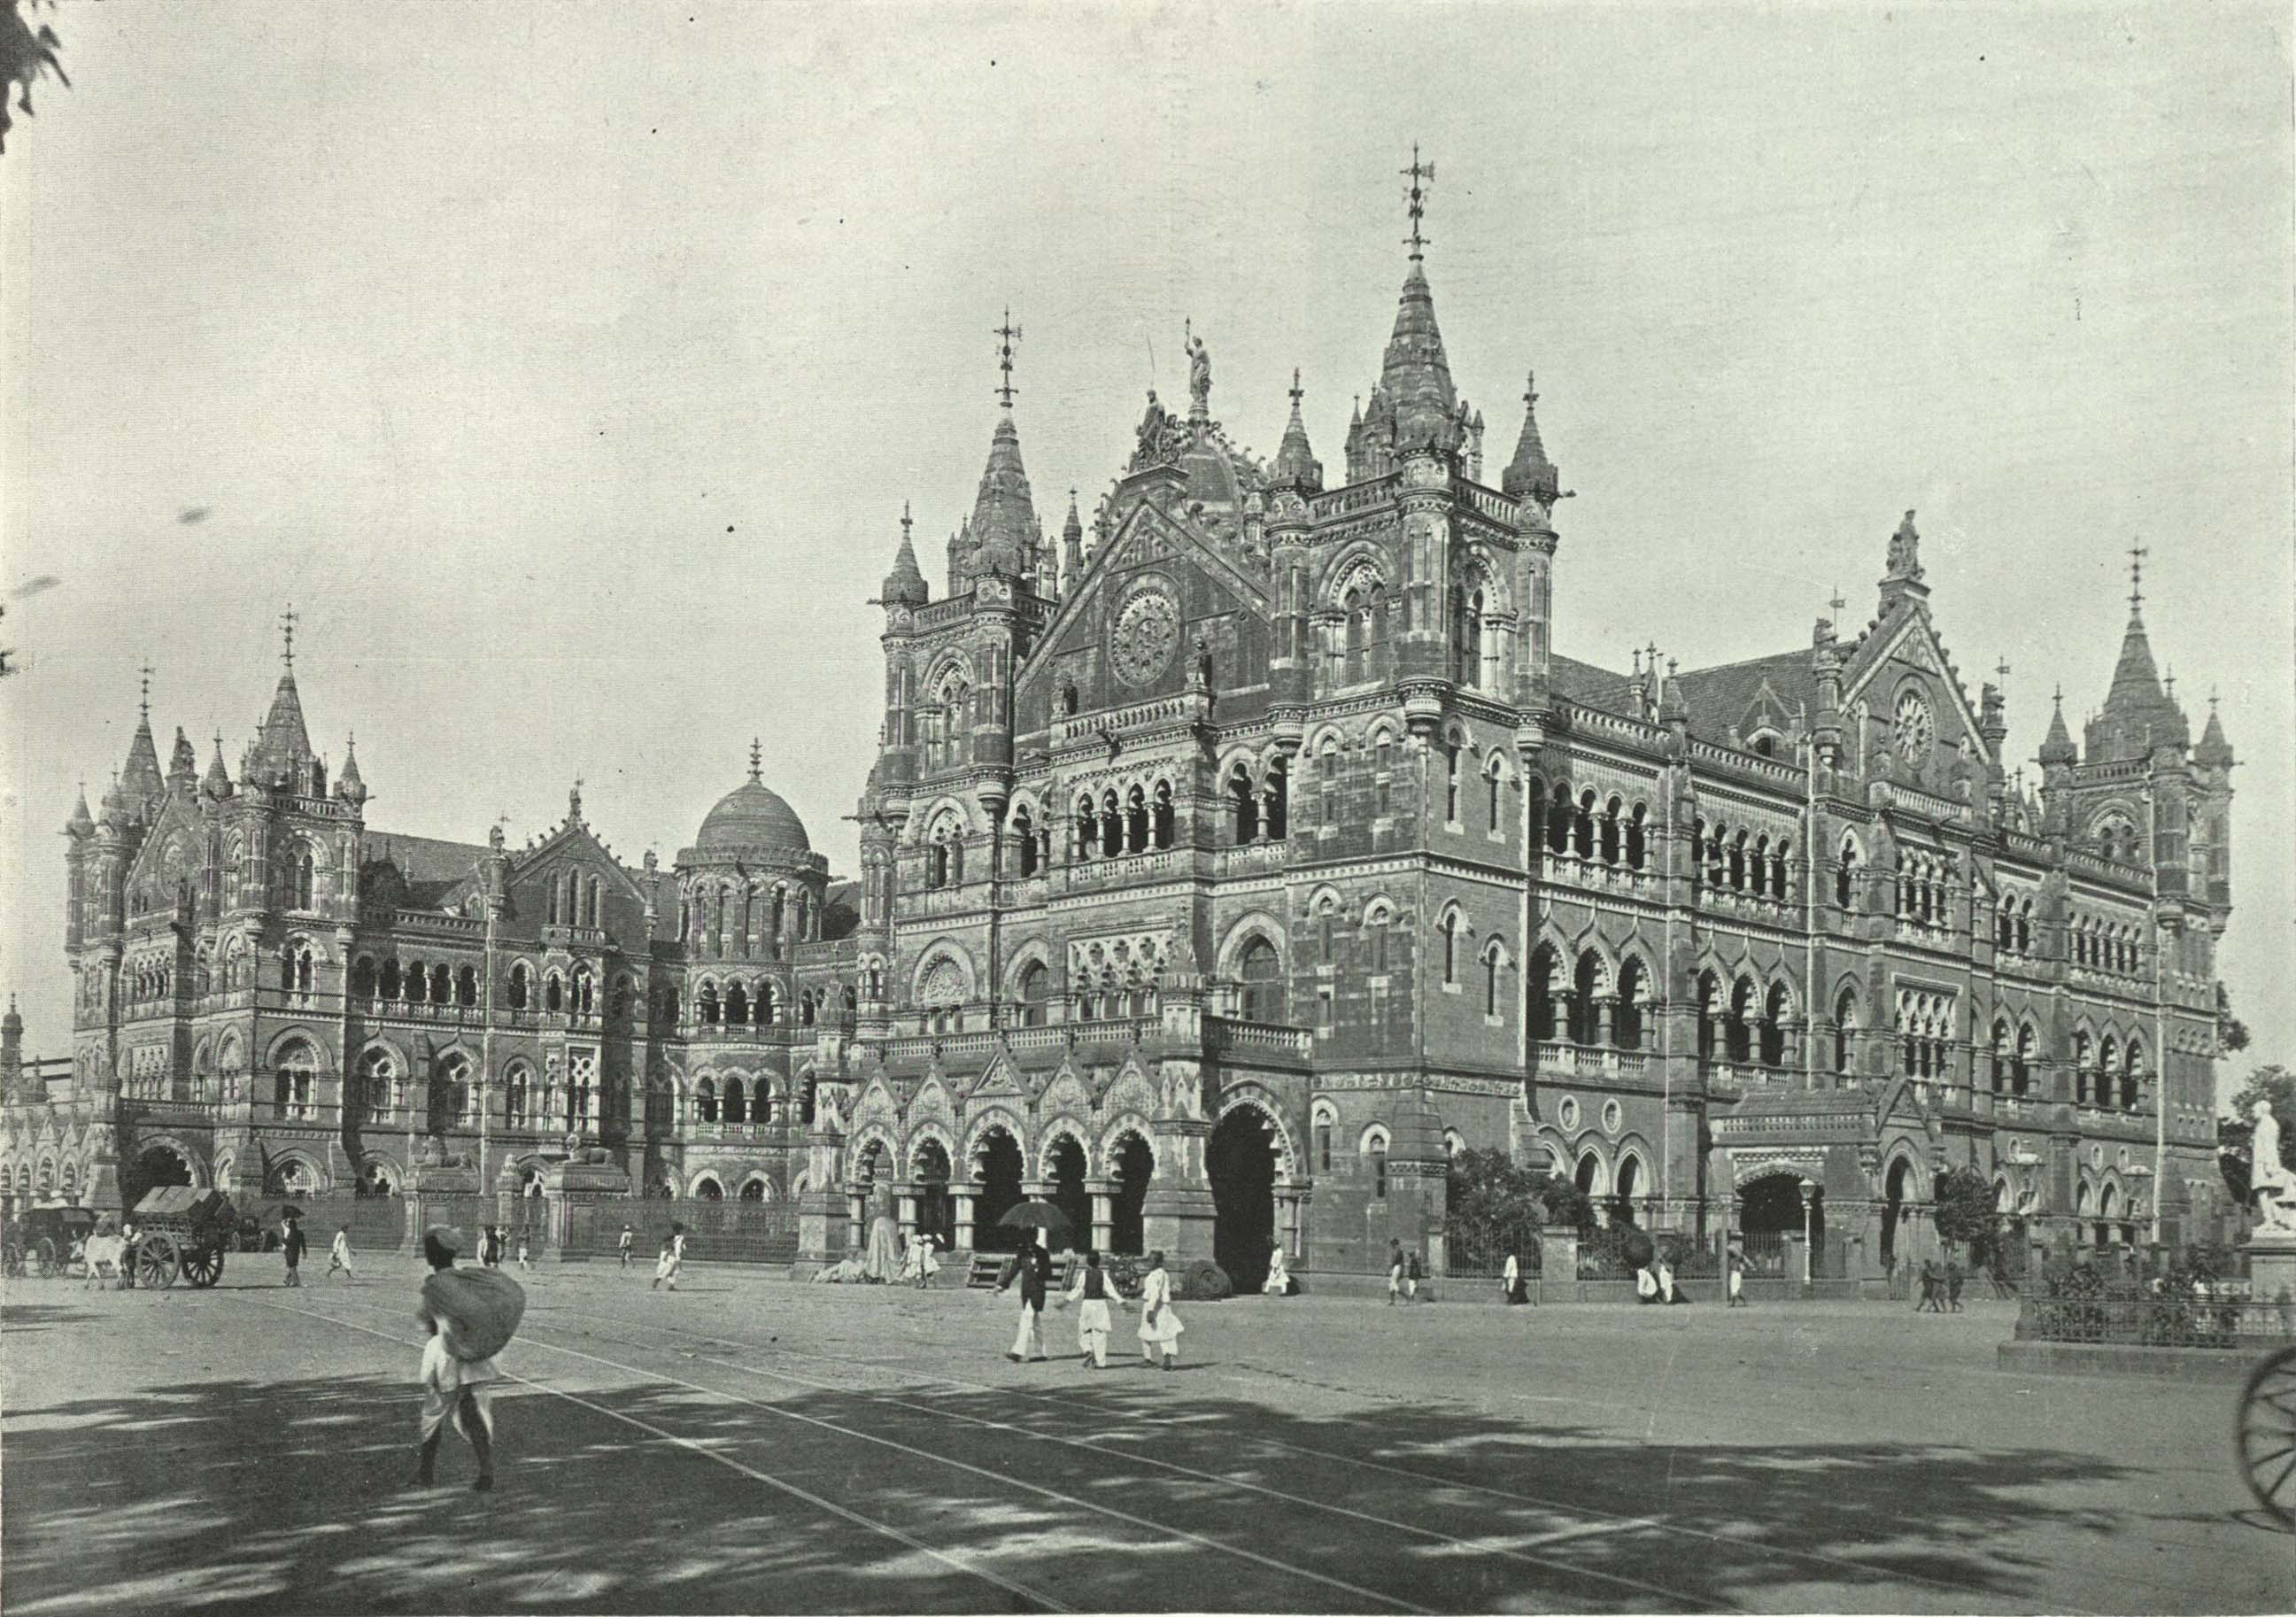 Bombay Photo Images Mumbai Once Upon A Time WR Was